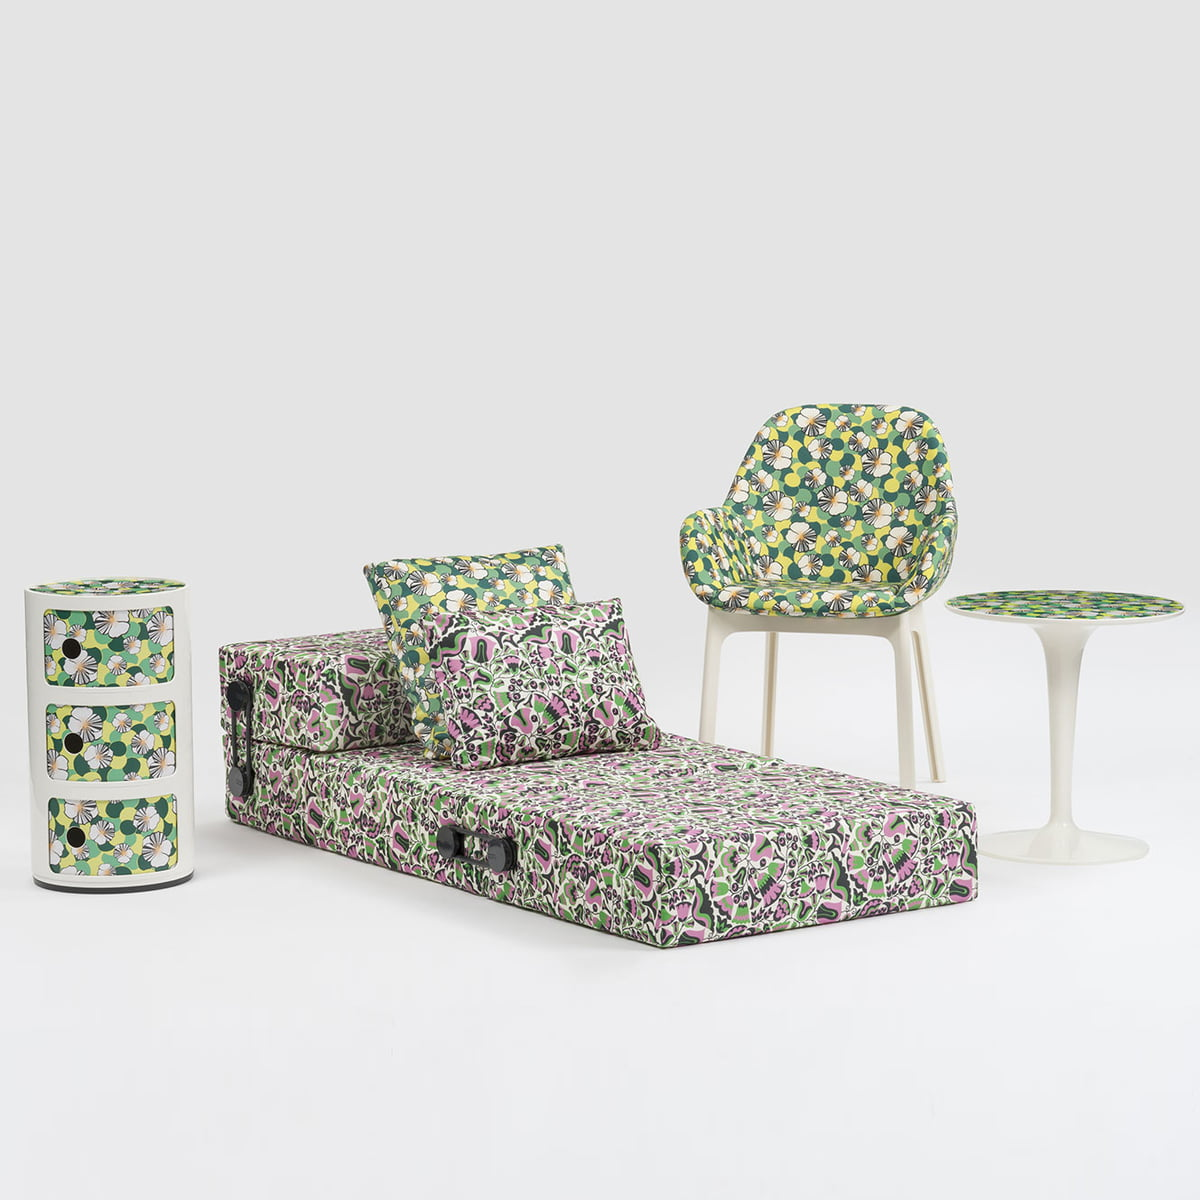 La double j collection by kartell